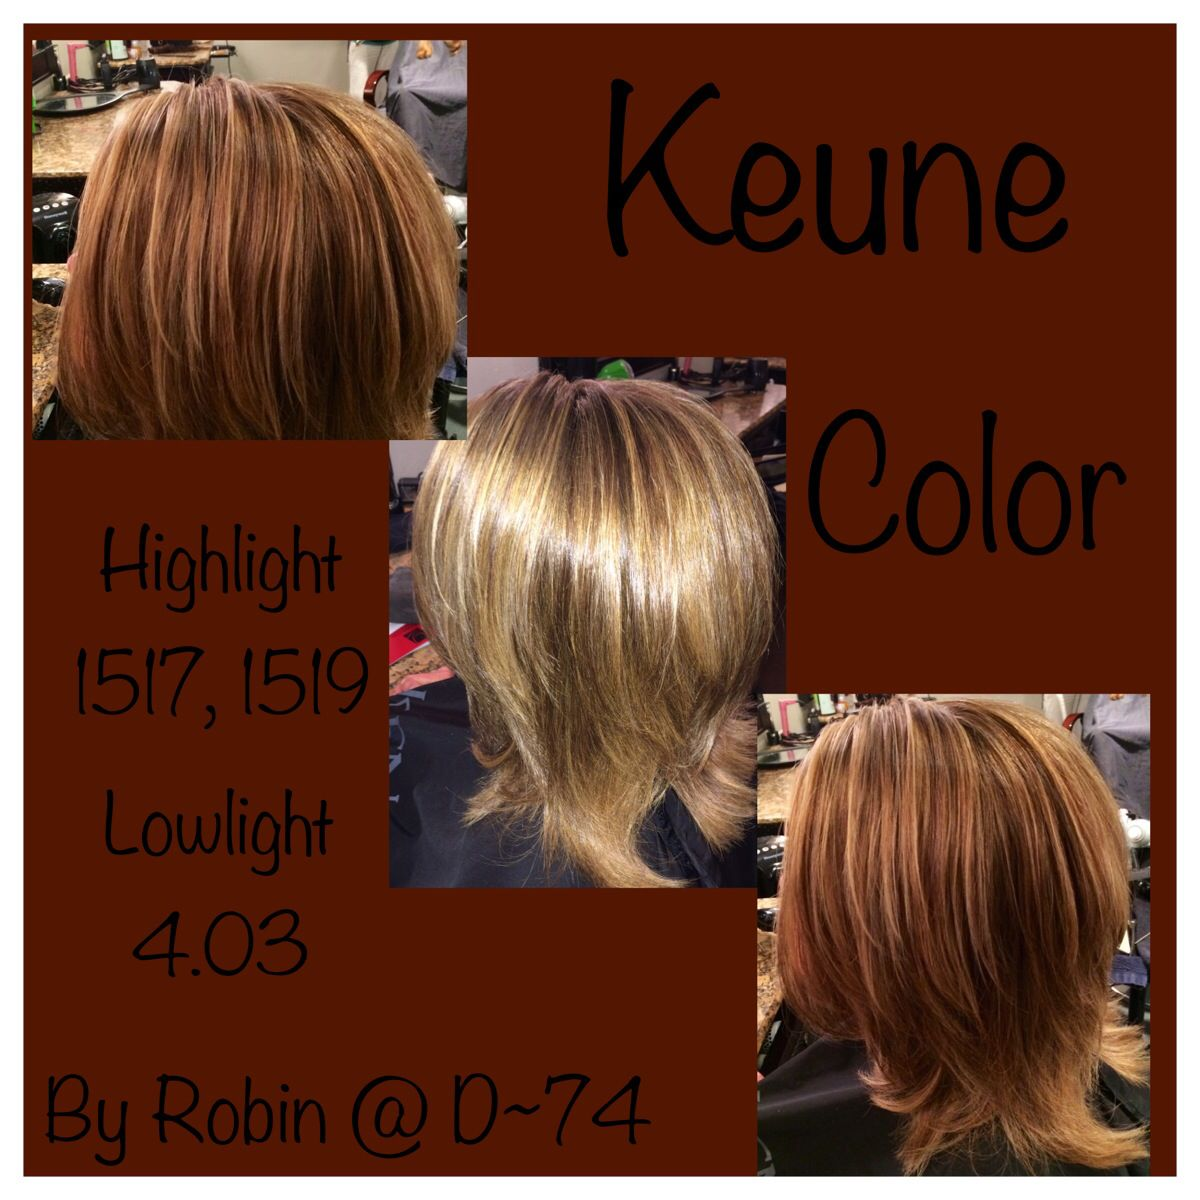 Keune Color Highlights Low Lights Colored Highlights Dream Hair About Hair